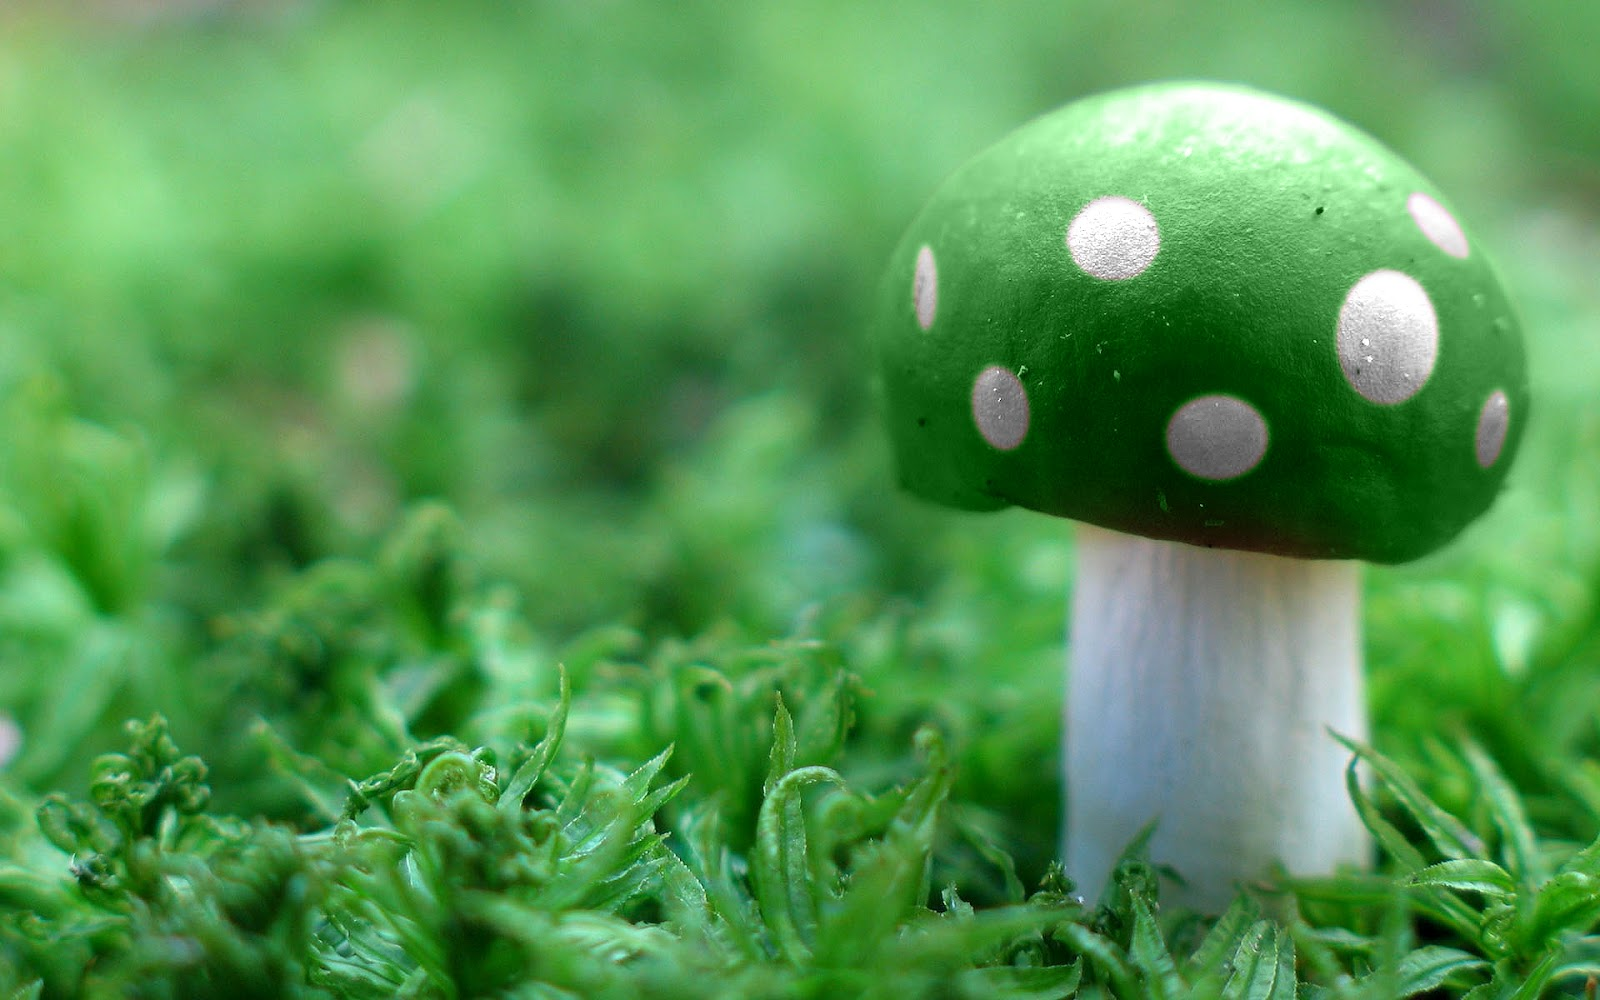 Free Download Car Wallpapers For Mobile Wnp Wallpapers Amp Pictures Green Mushroom Wallpaper